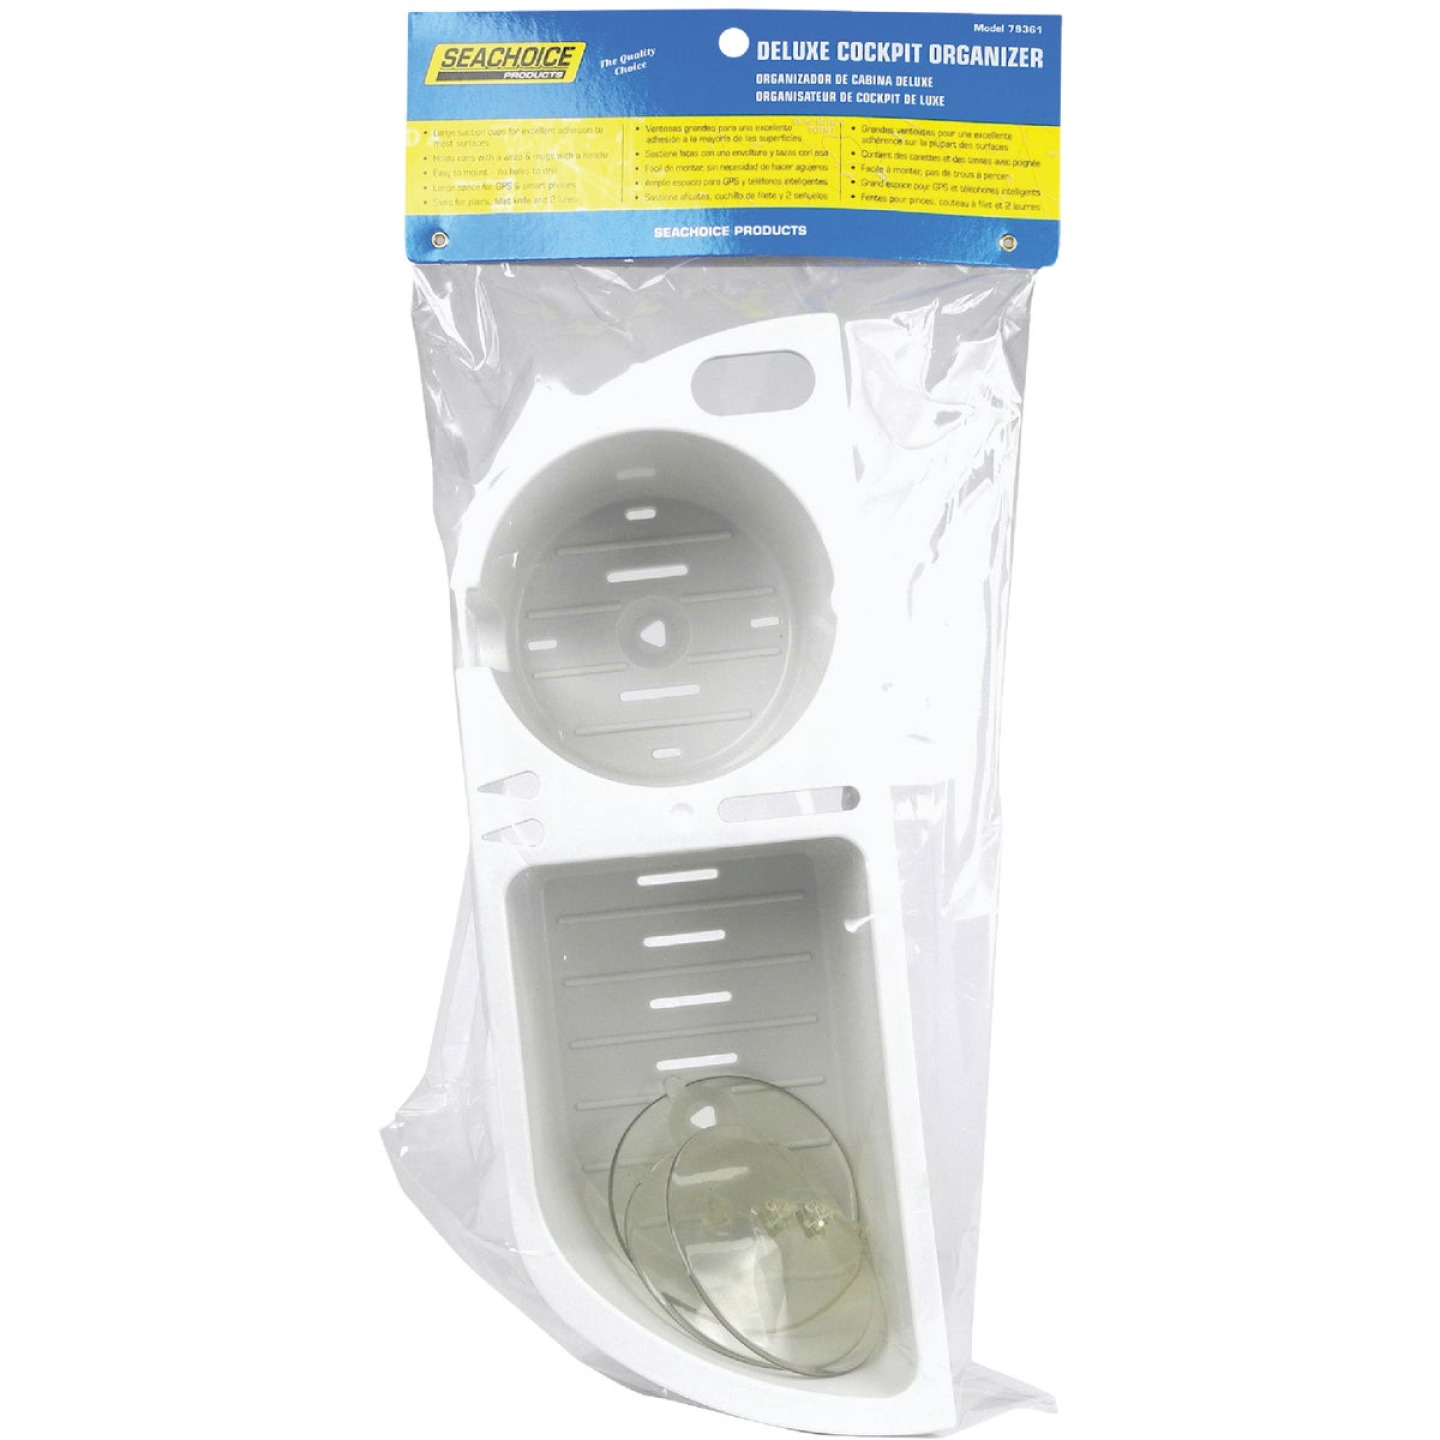 Seachoice Cruisin' Caddy White Plastic Drink Holder and Storage Holder Image 1